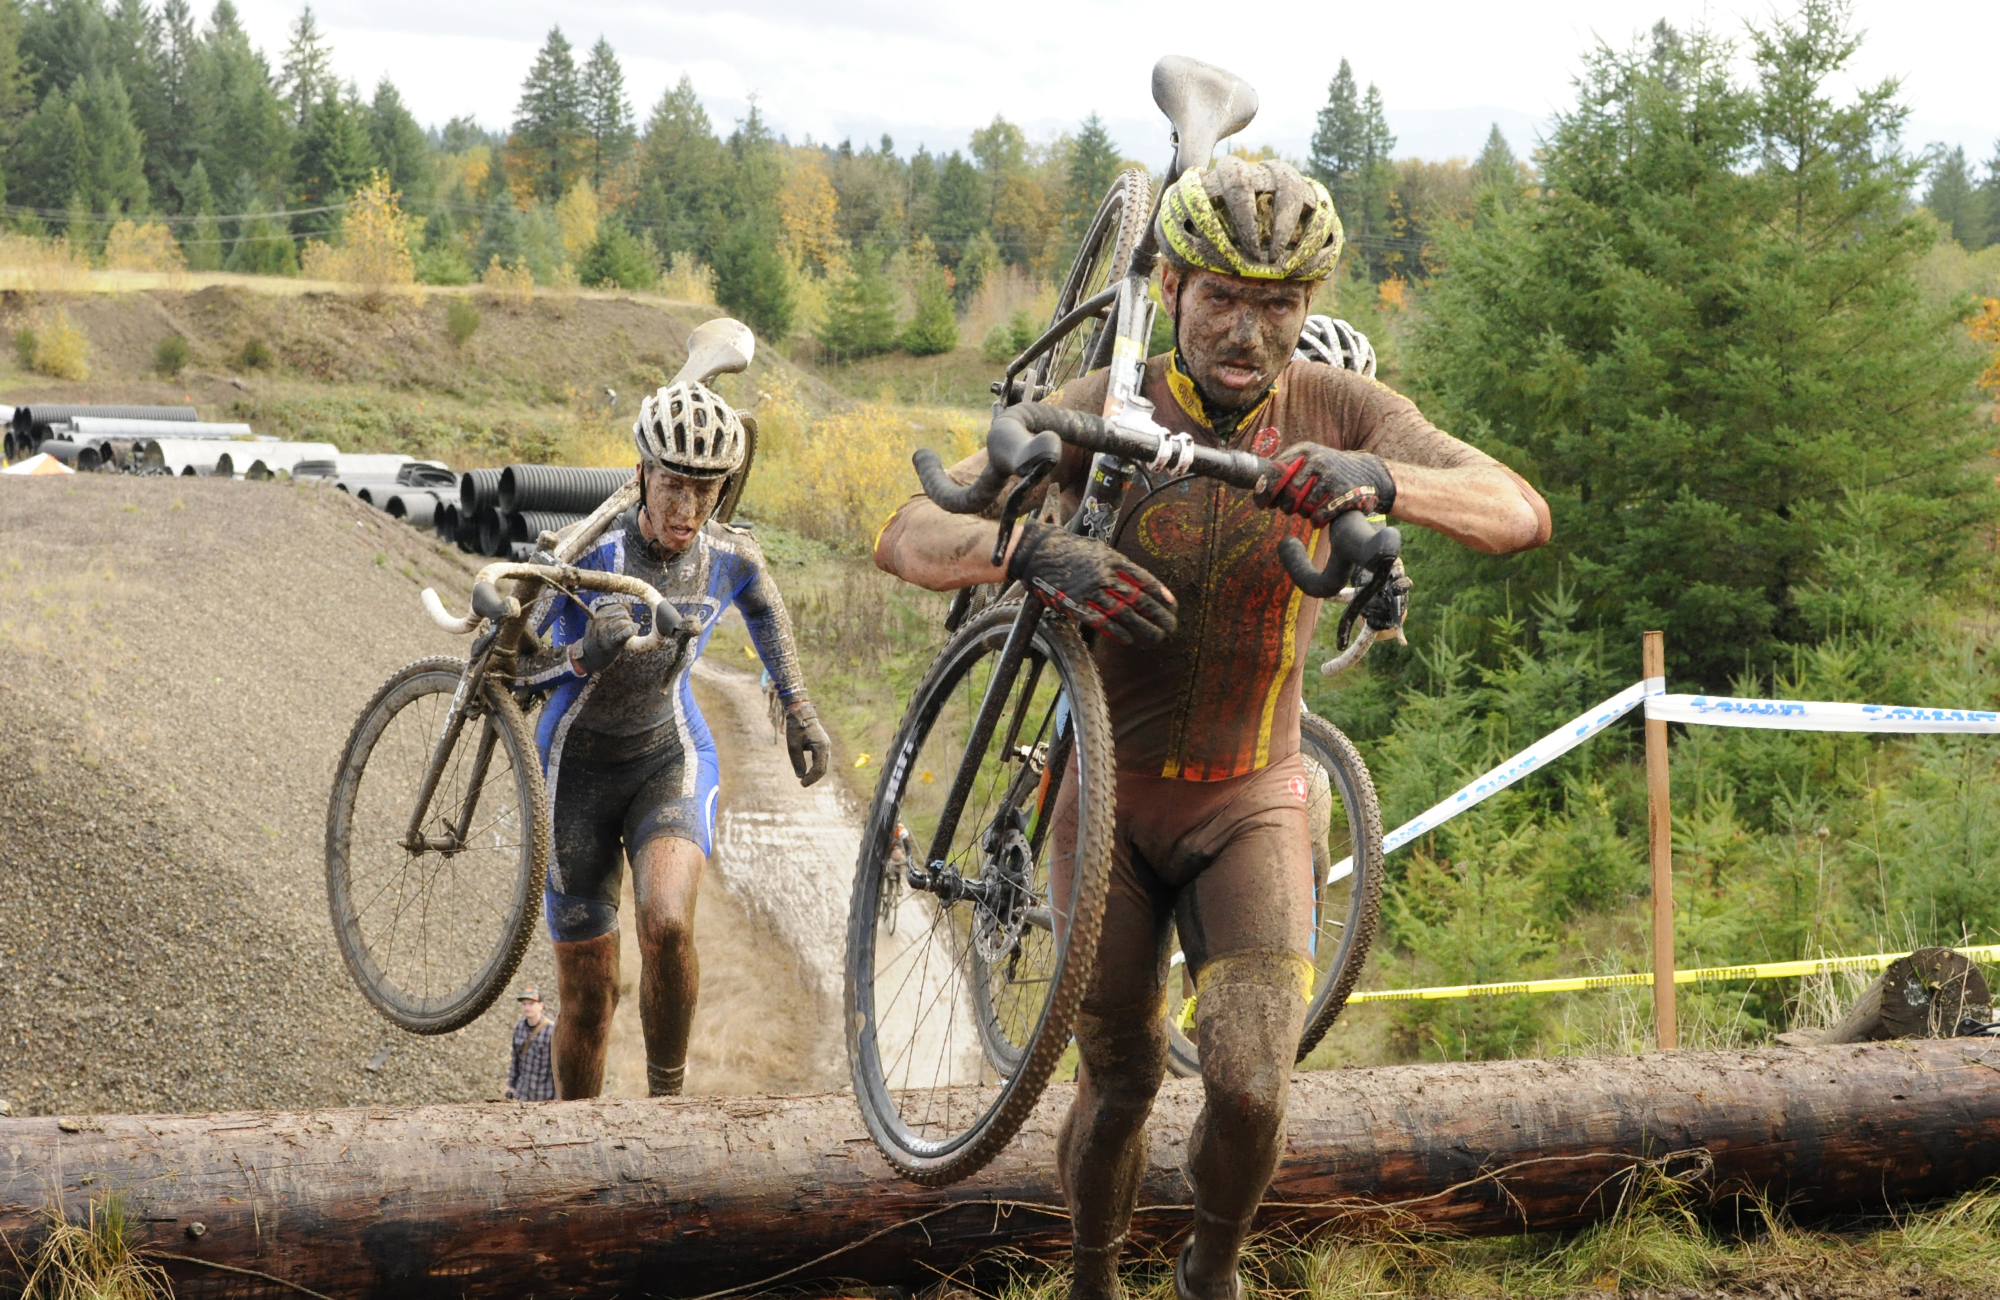 SellwoodCycle_CCBP_49